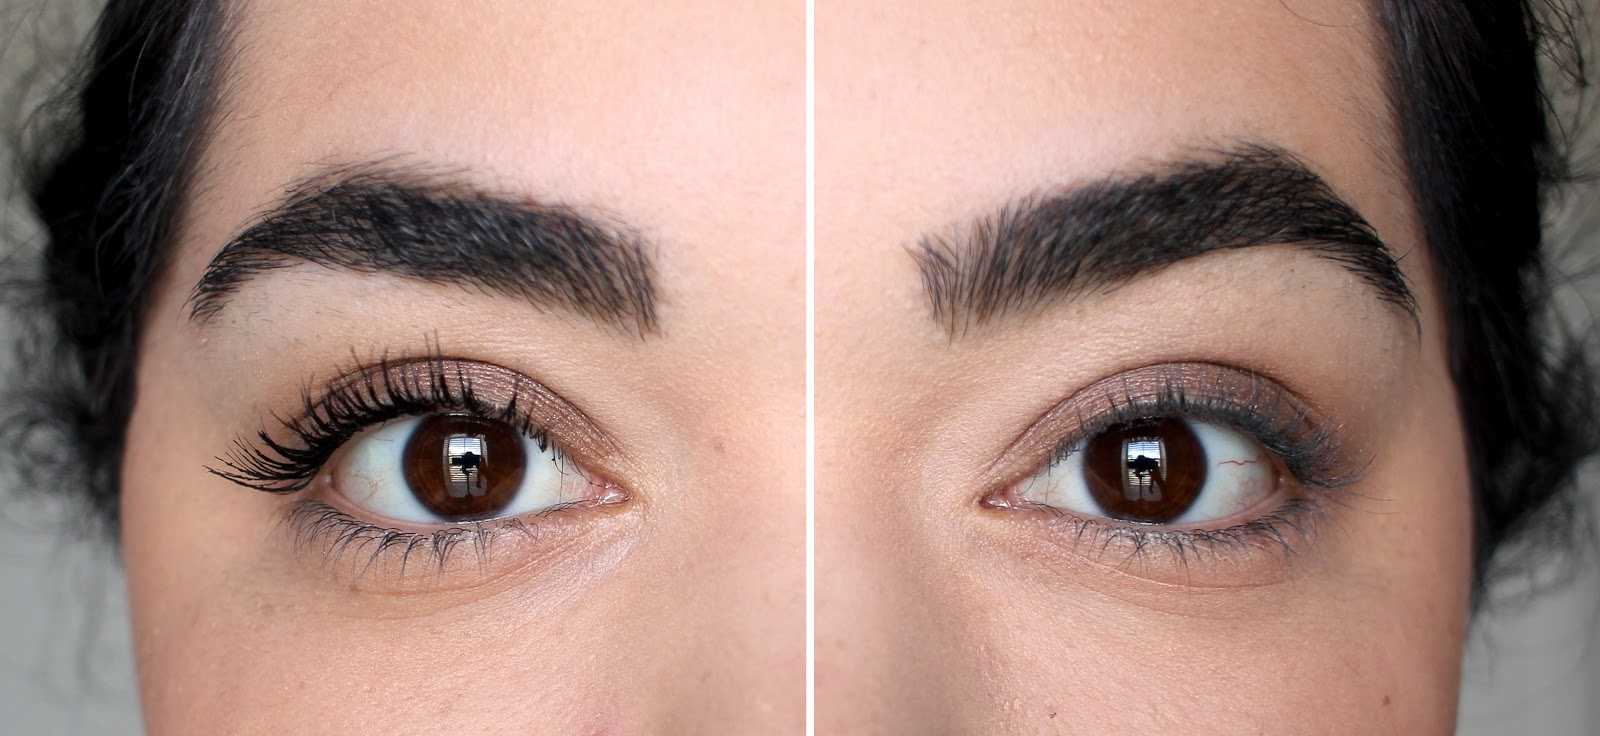 82530b5ab88 Review | Maybelline The Falsies Push Up Drama Mascara | Laura Neuzeth